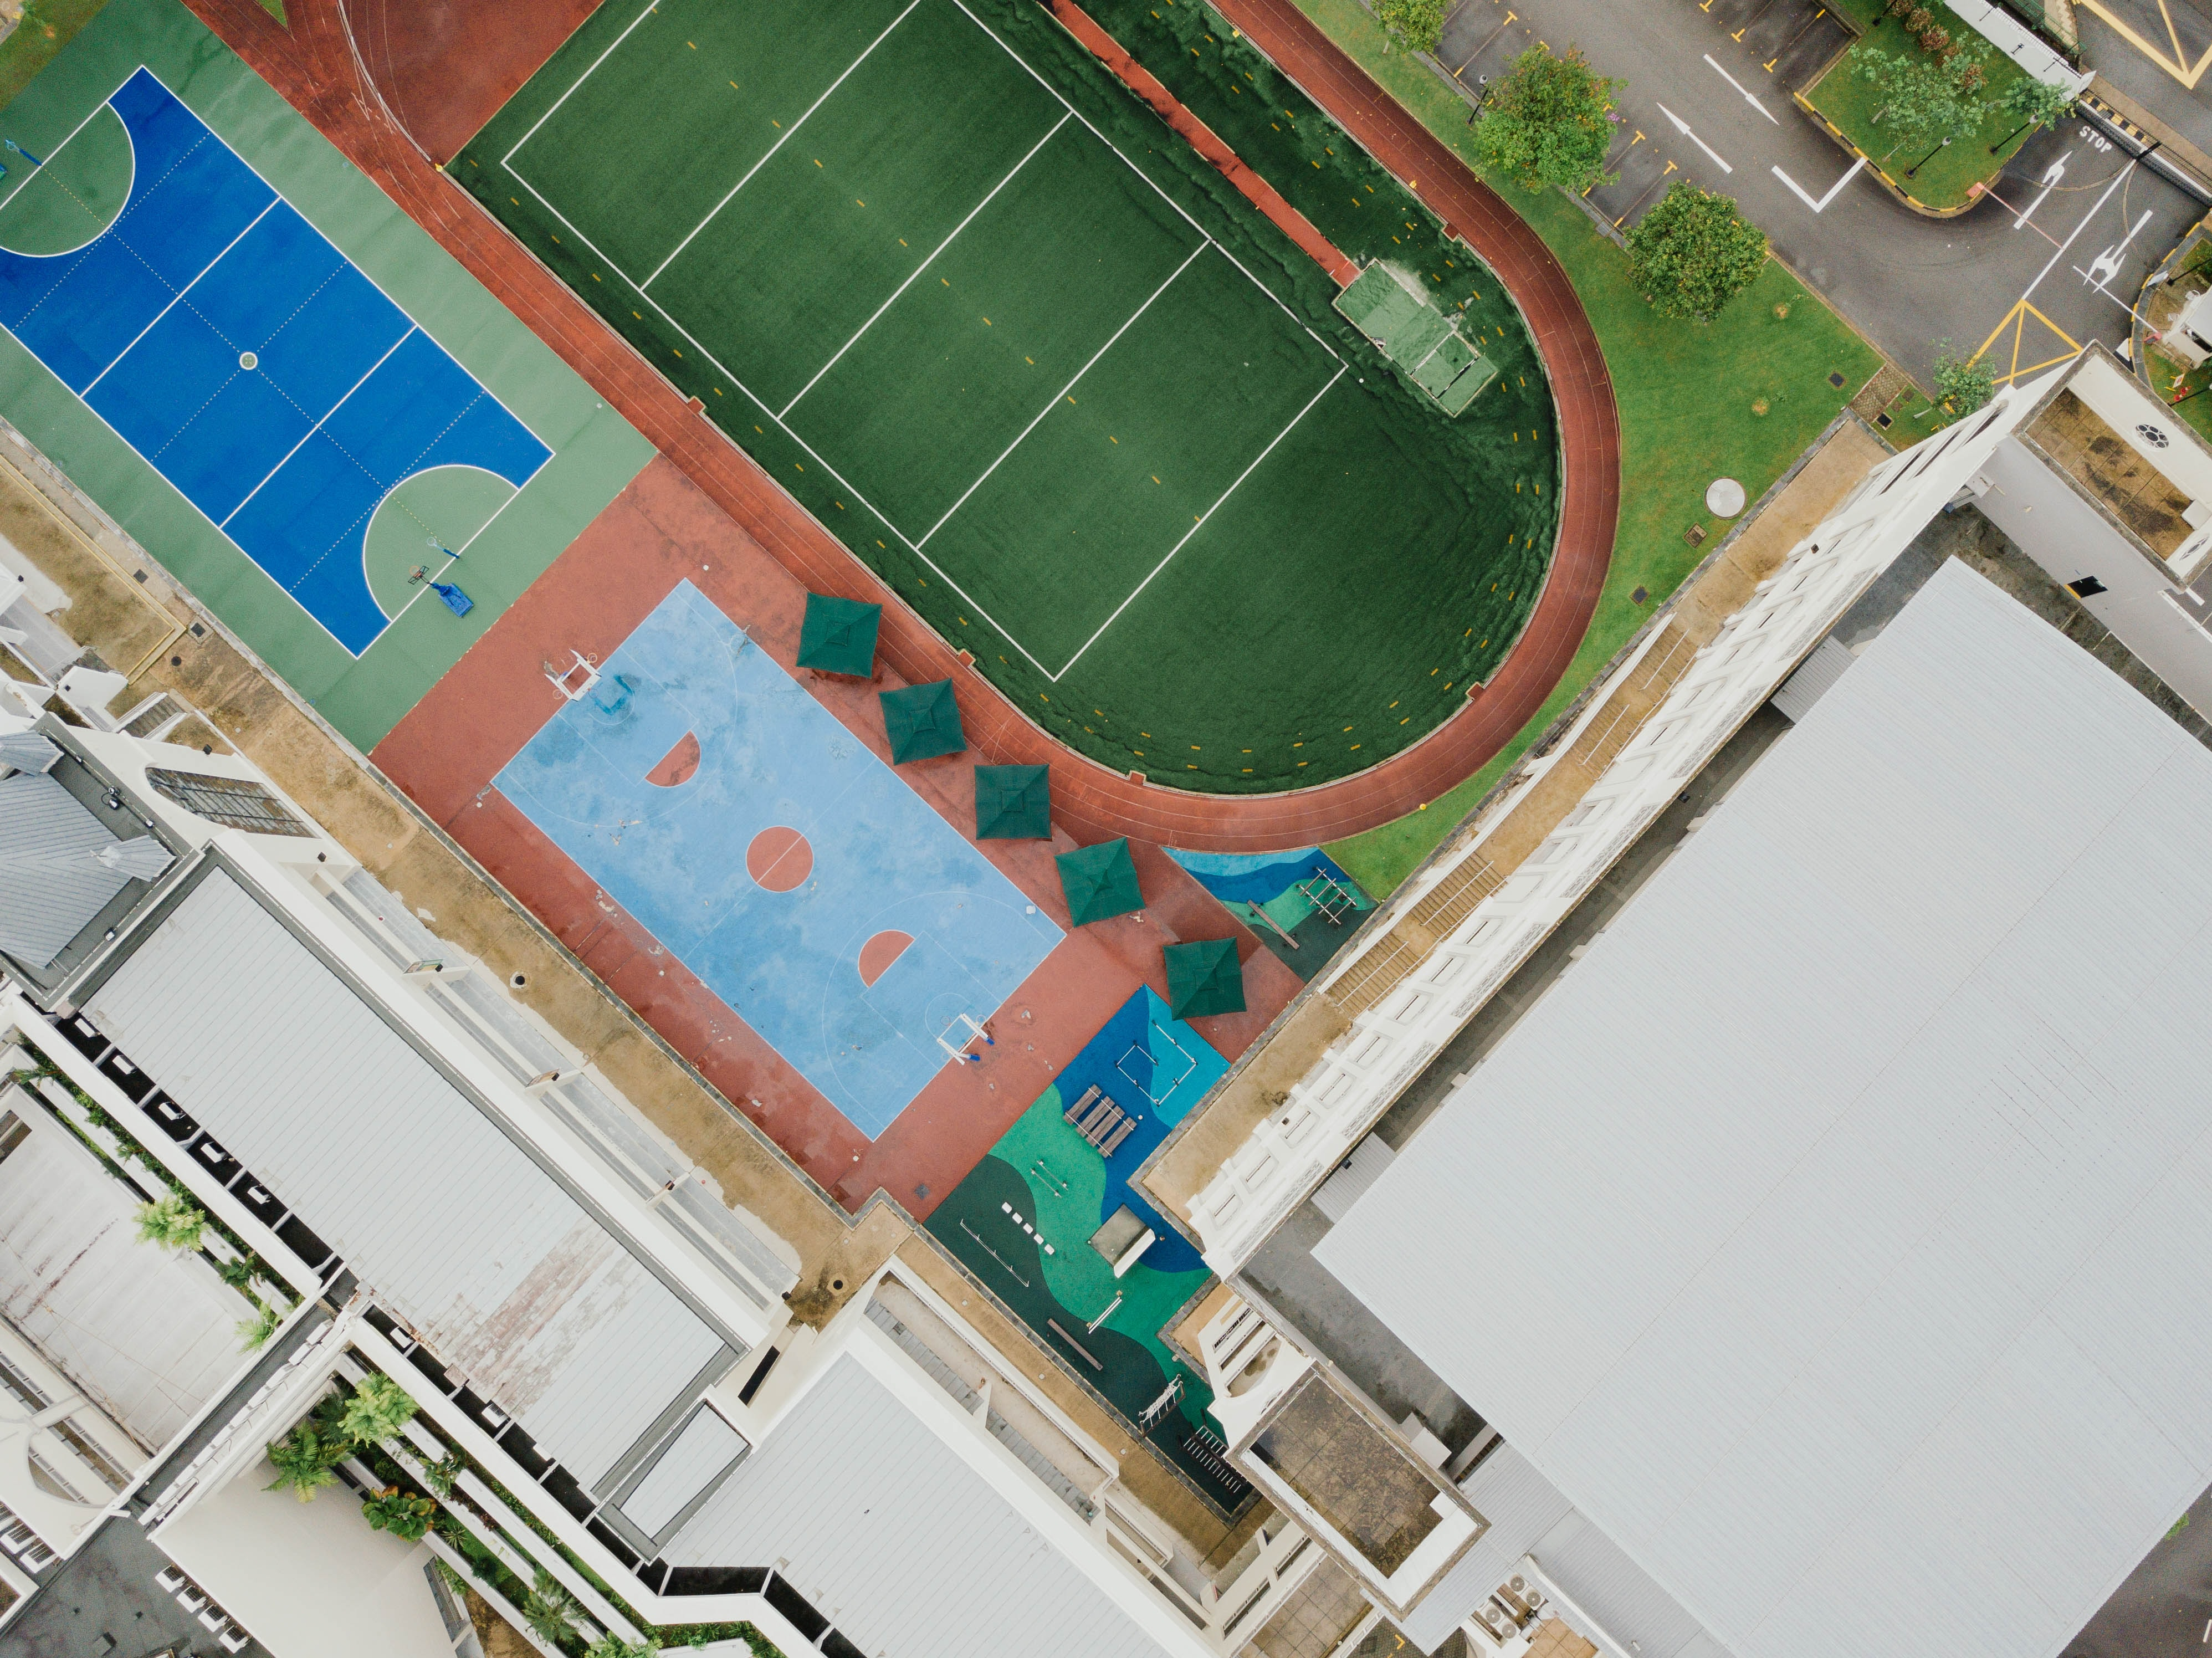 aerial photo of tennis court and building